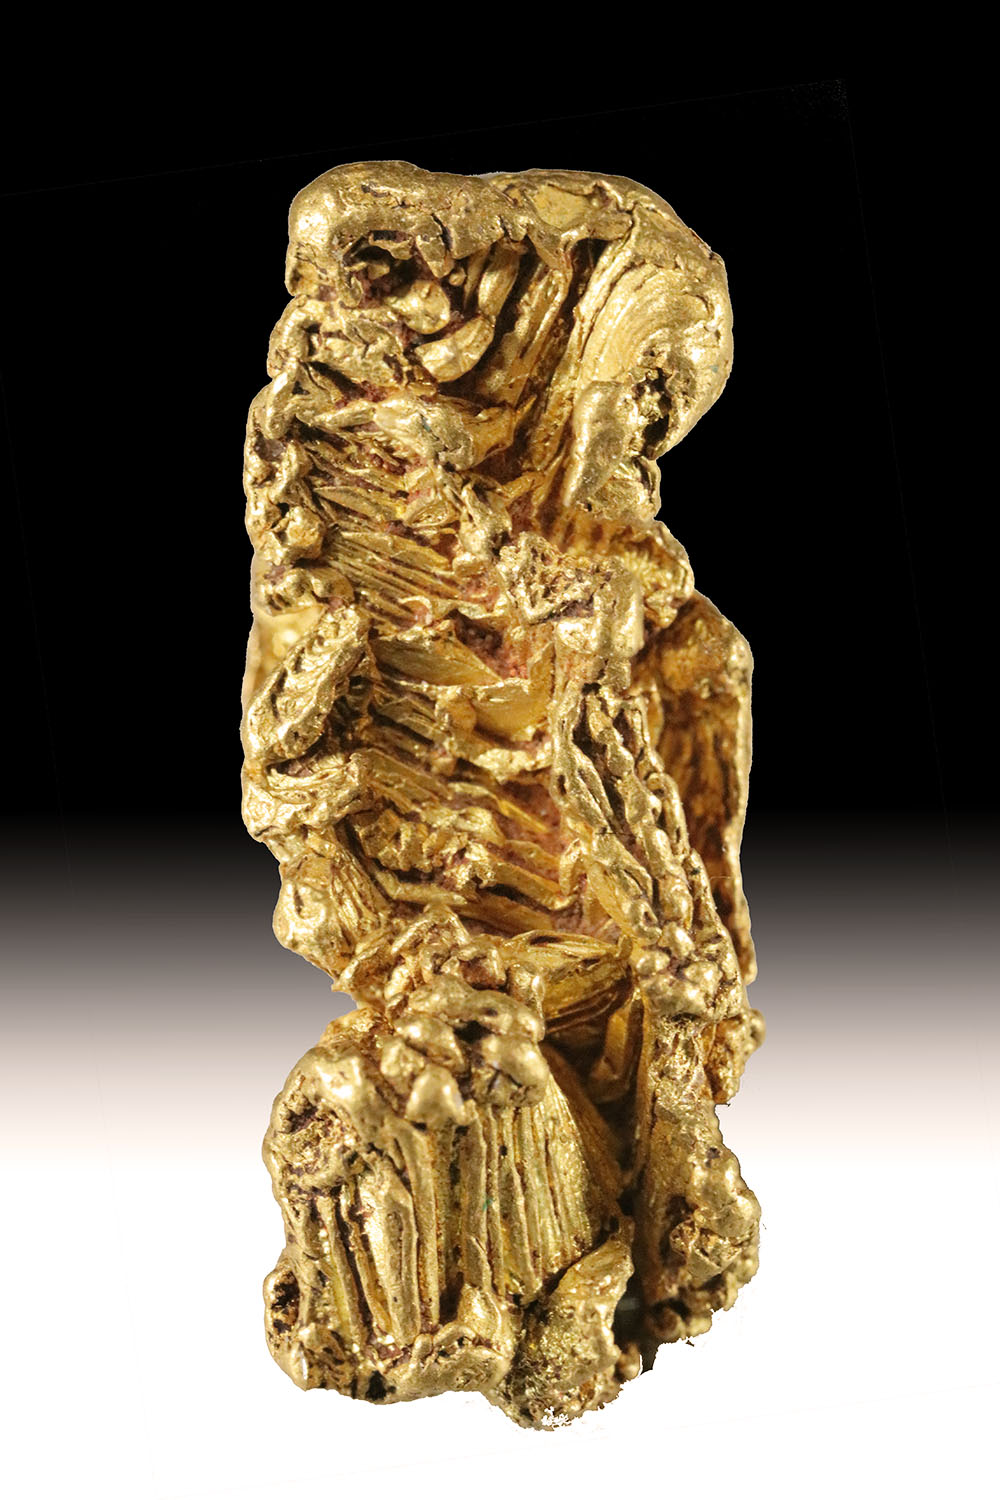 Very Rare Hoppered Alaskan Gold Nugget Crystal